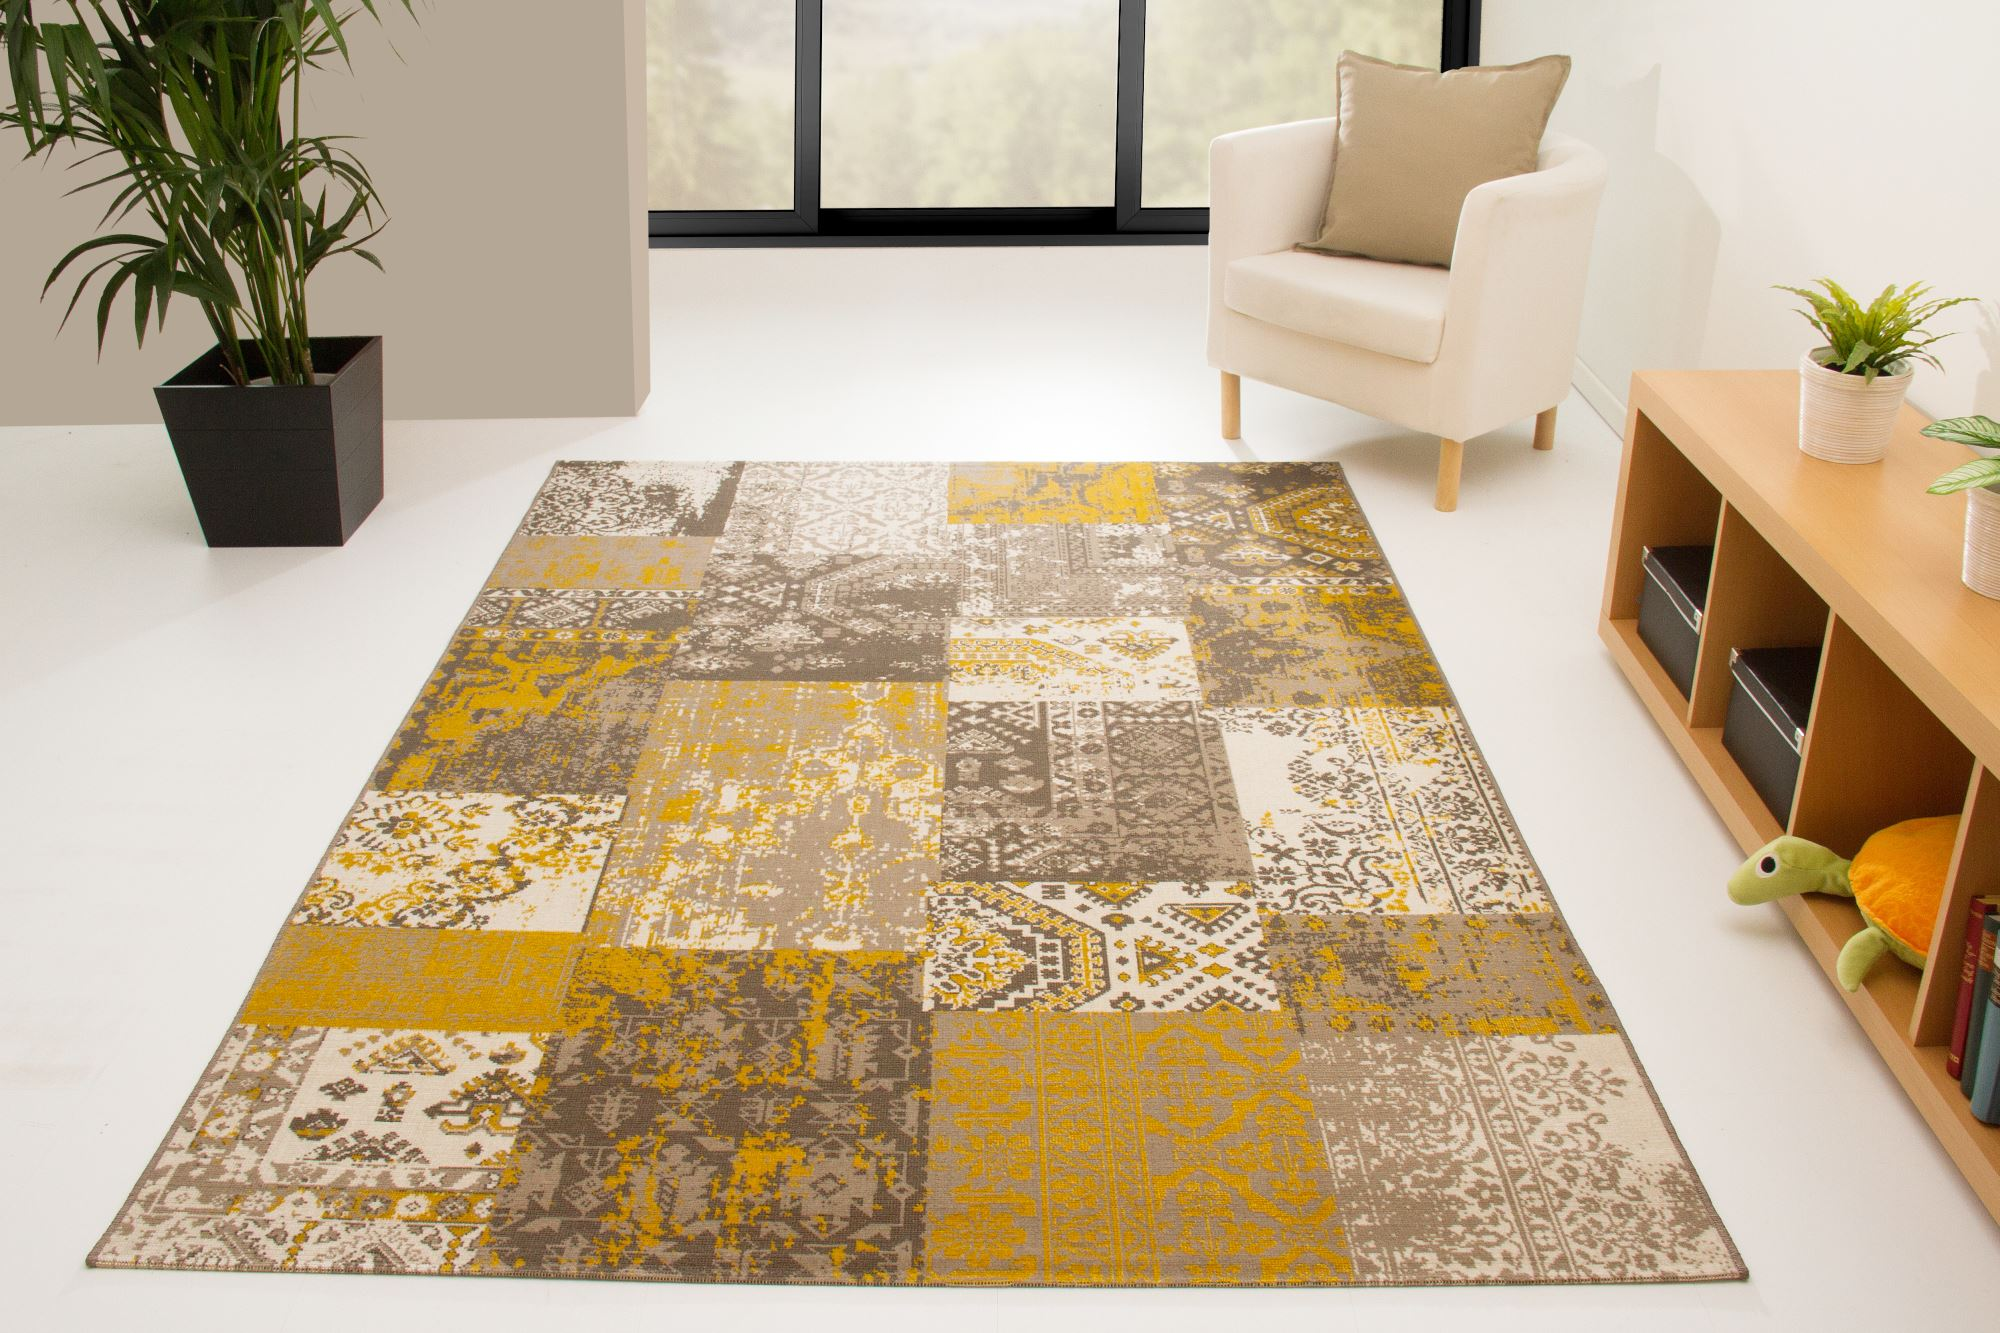 new modern rug karthago fields design colourful ebay. Black Bedroom Furniture Sets. Home Design Ideas